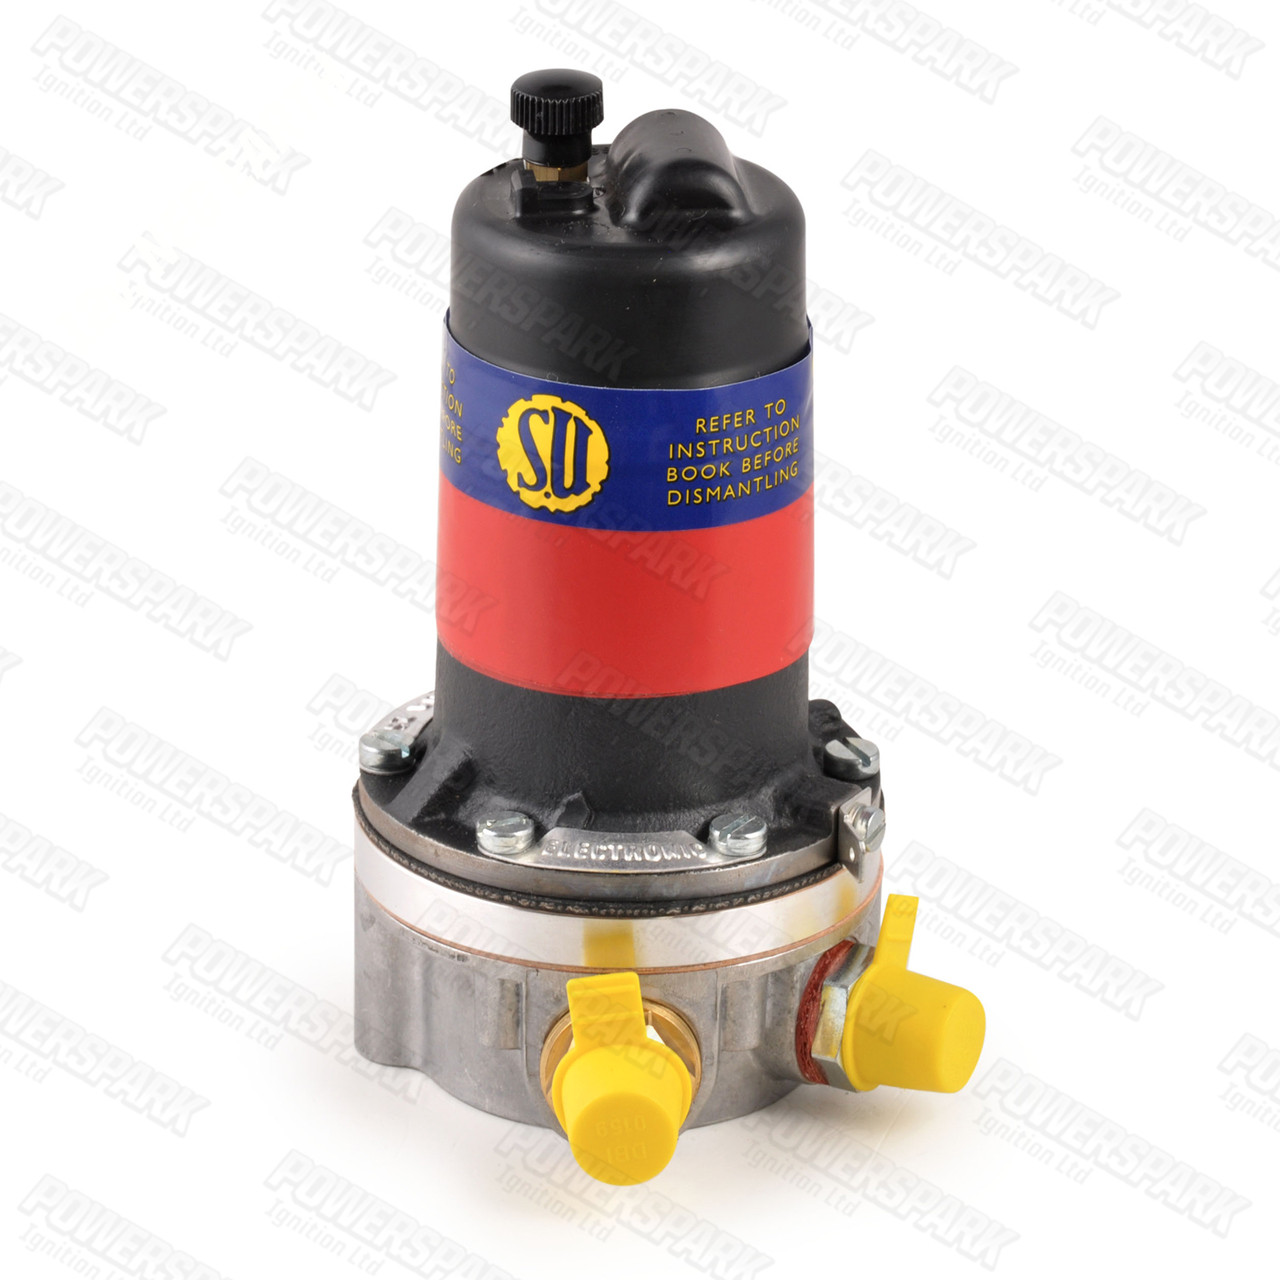 Genuine SU AUA25 Electronic Fuel Pump Positive Earth 12 volt 1.5 psi